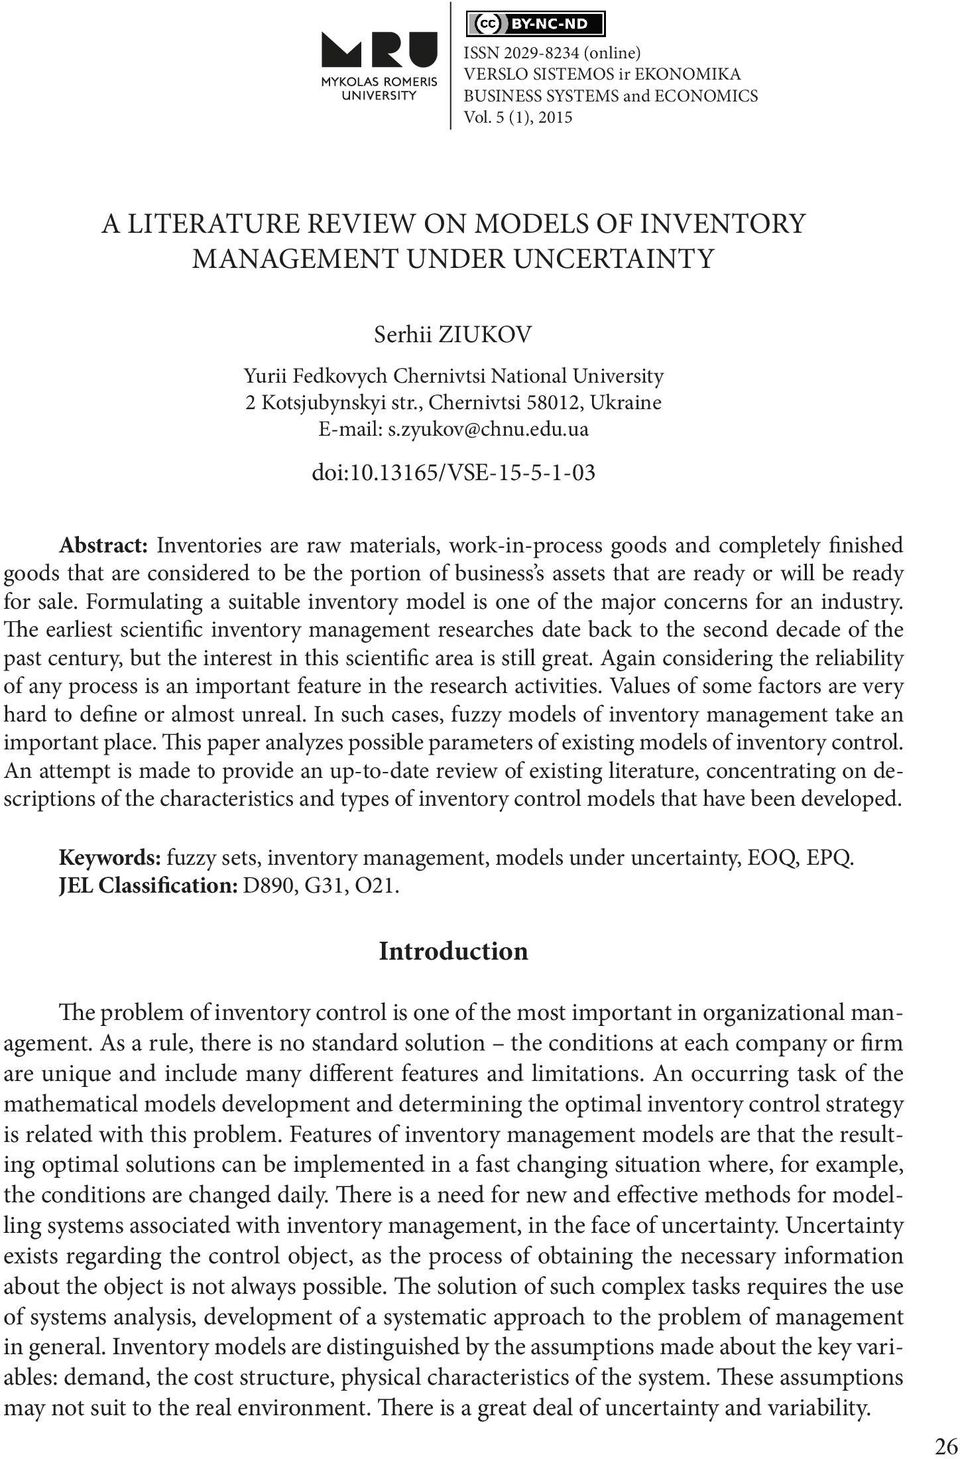 literature review of inventory management